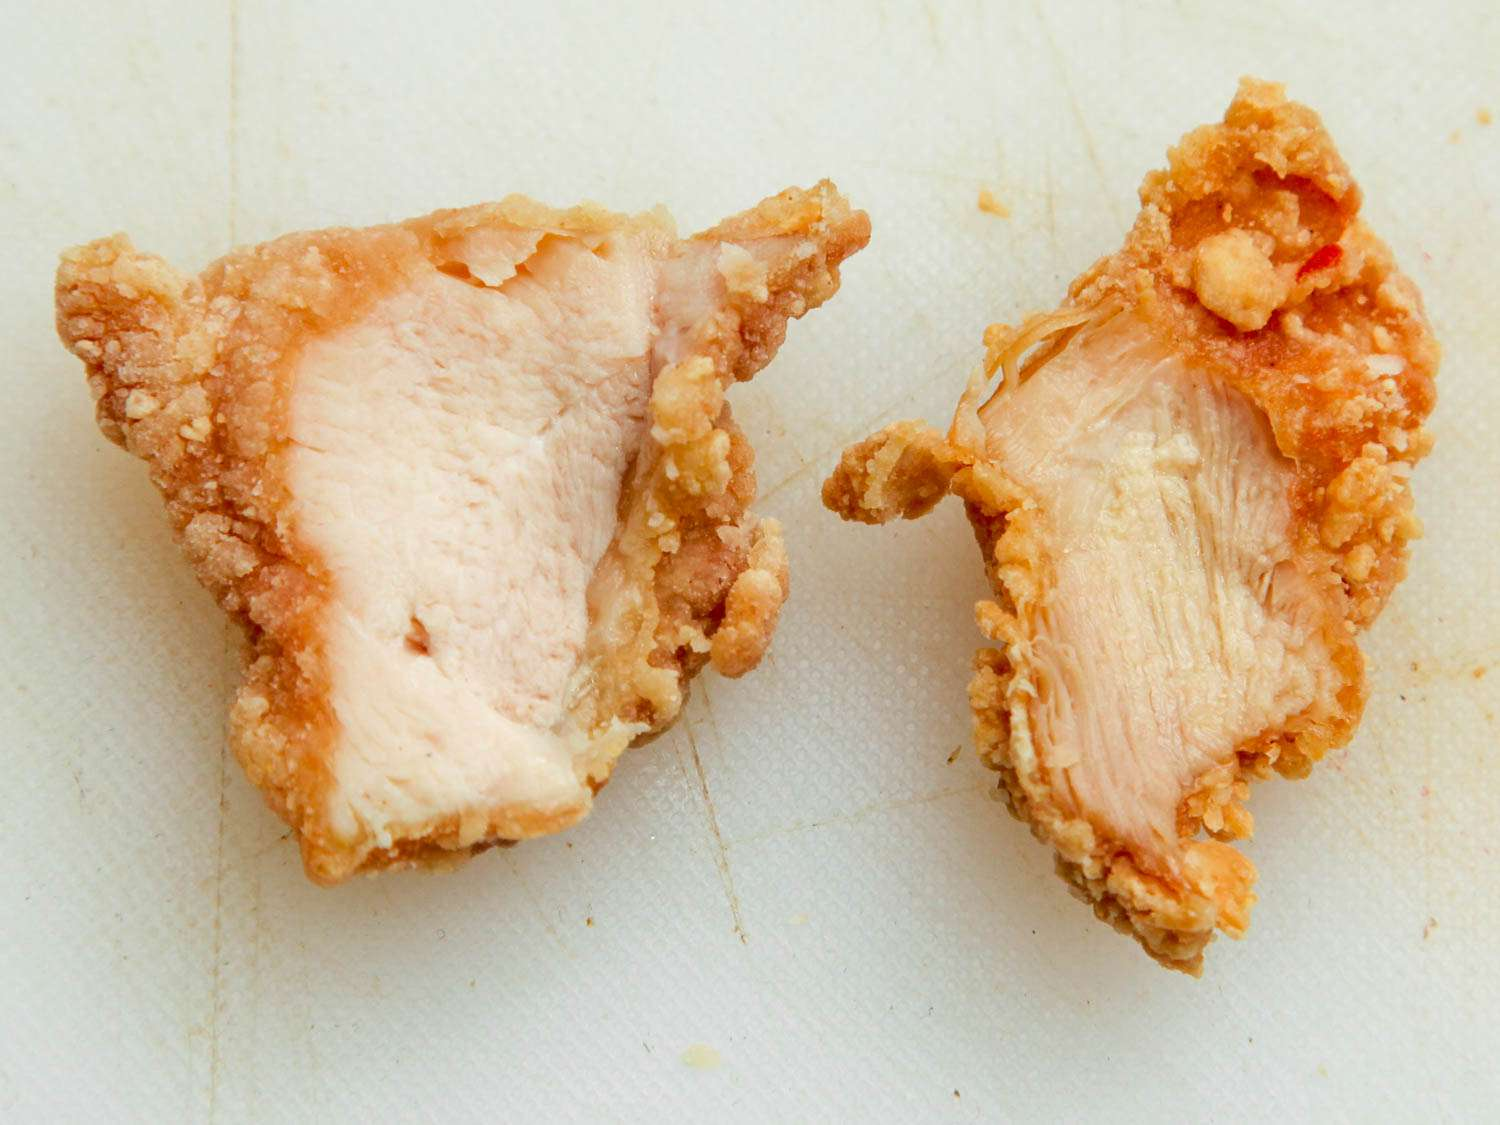 Fried chicken breast (left) and fried chicken thigh (right) side-by-side on white cutting board.